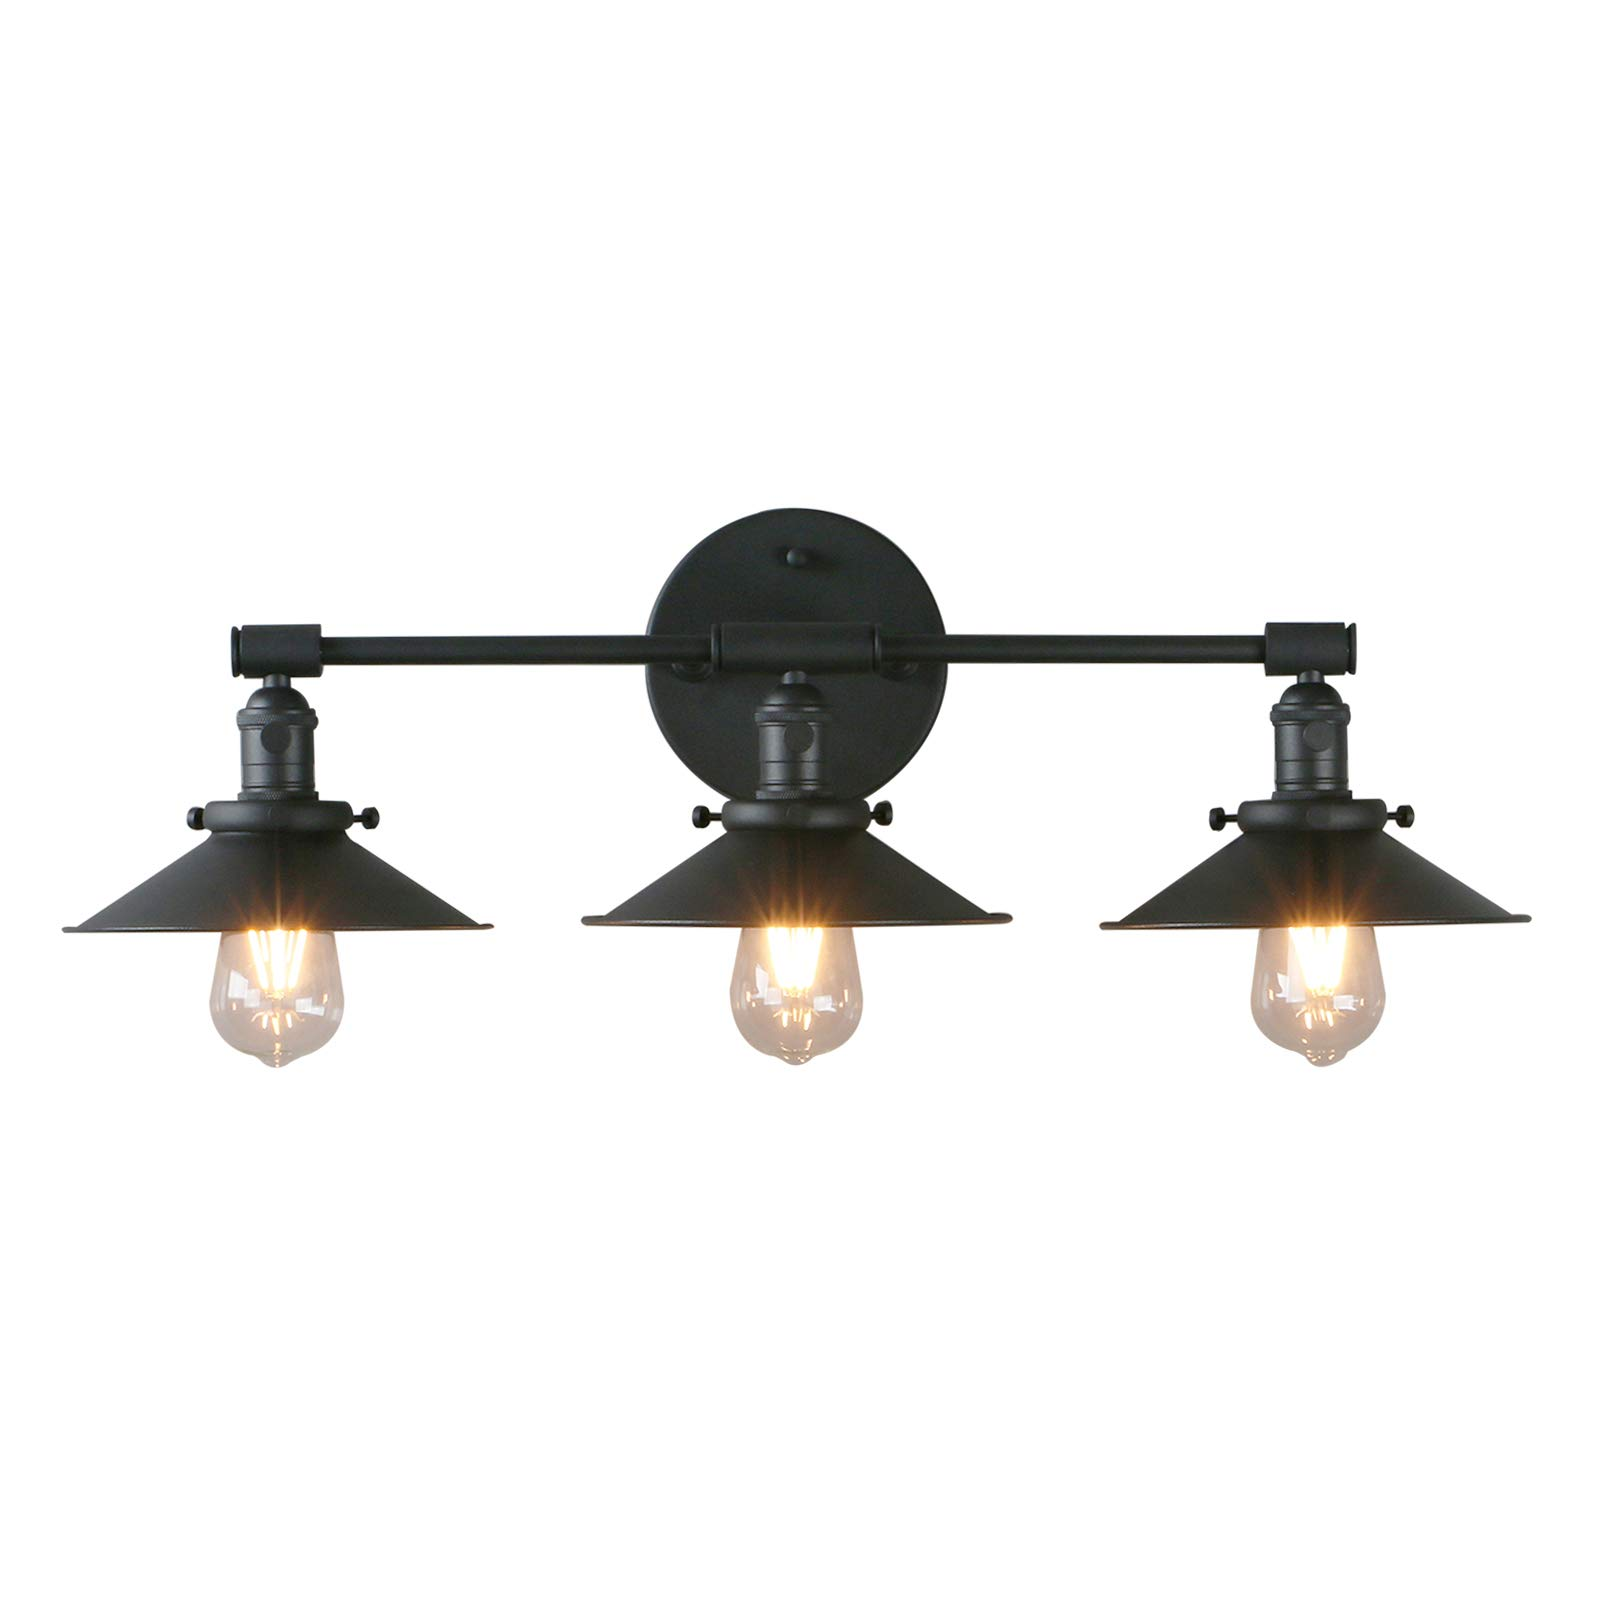 "Phansthy Vanity Lights 3 Lights Wall Sconce with 7.87""Metal Lamp Shade (Matte Black)"